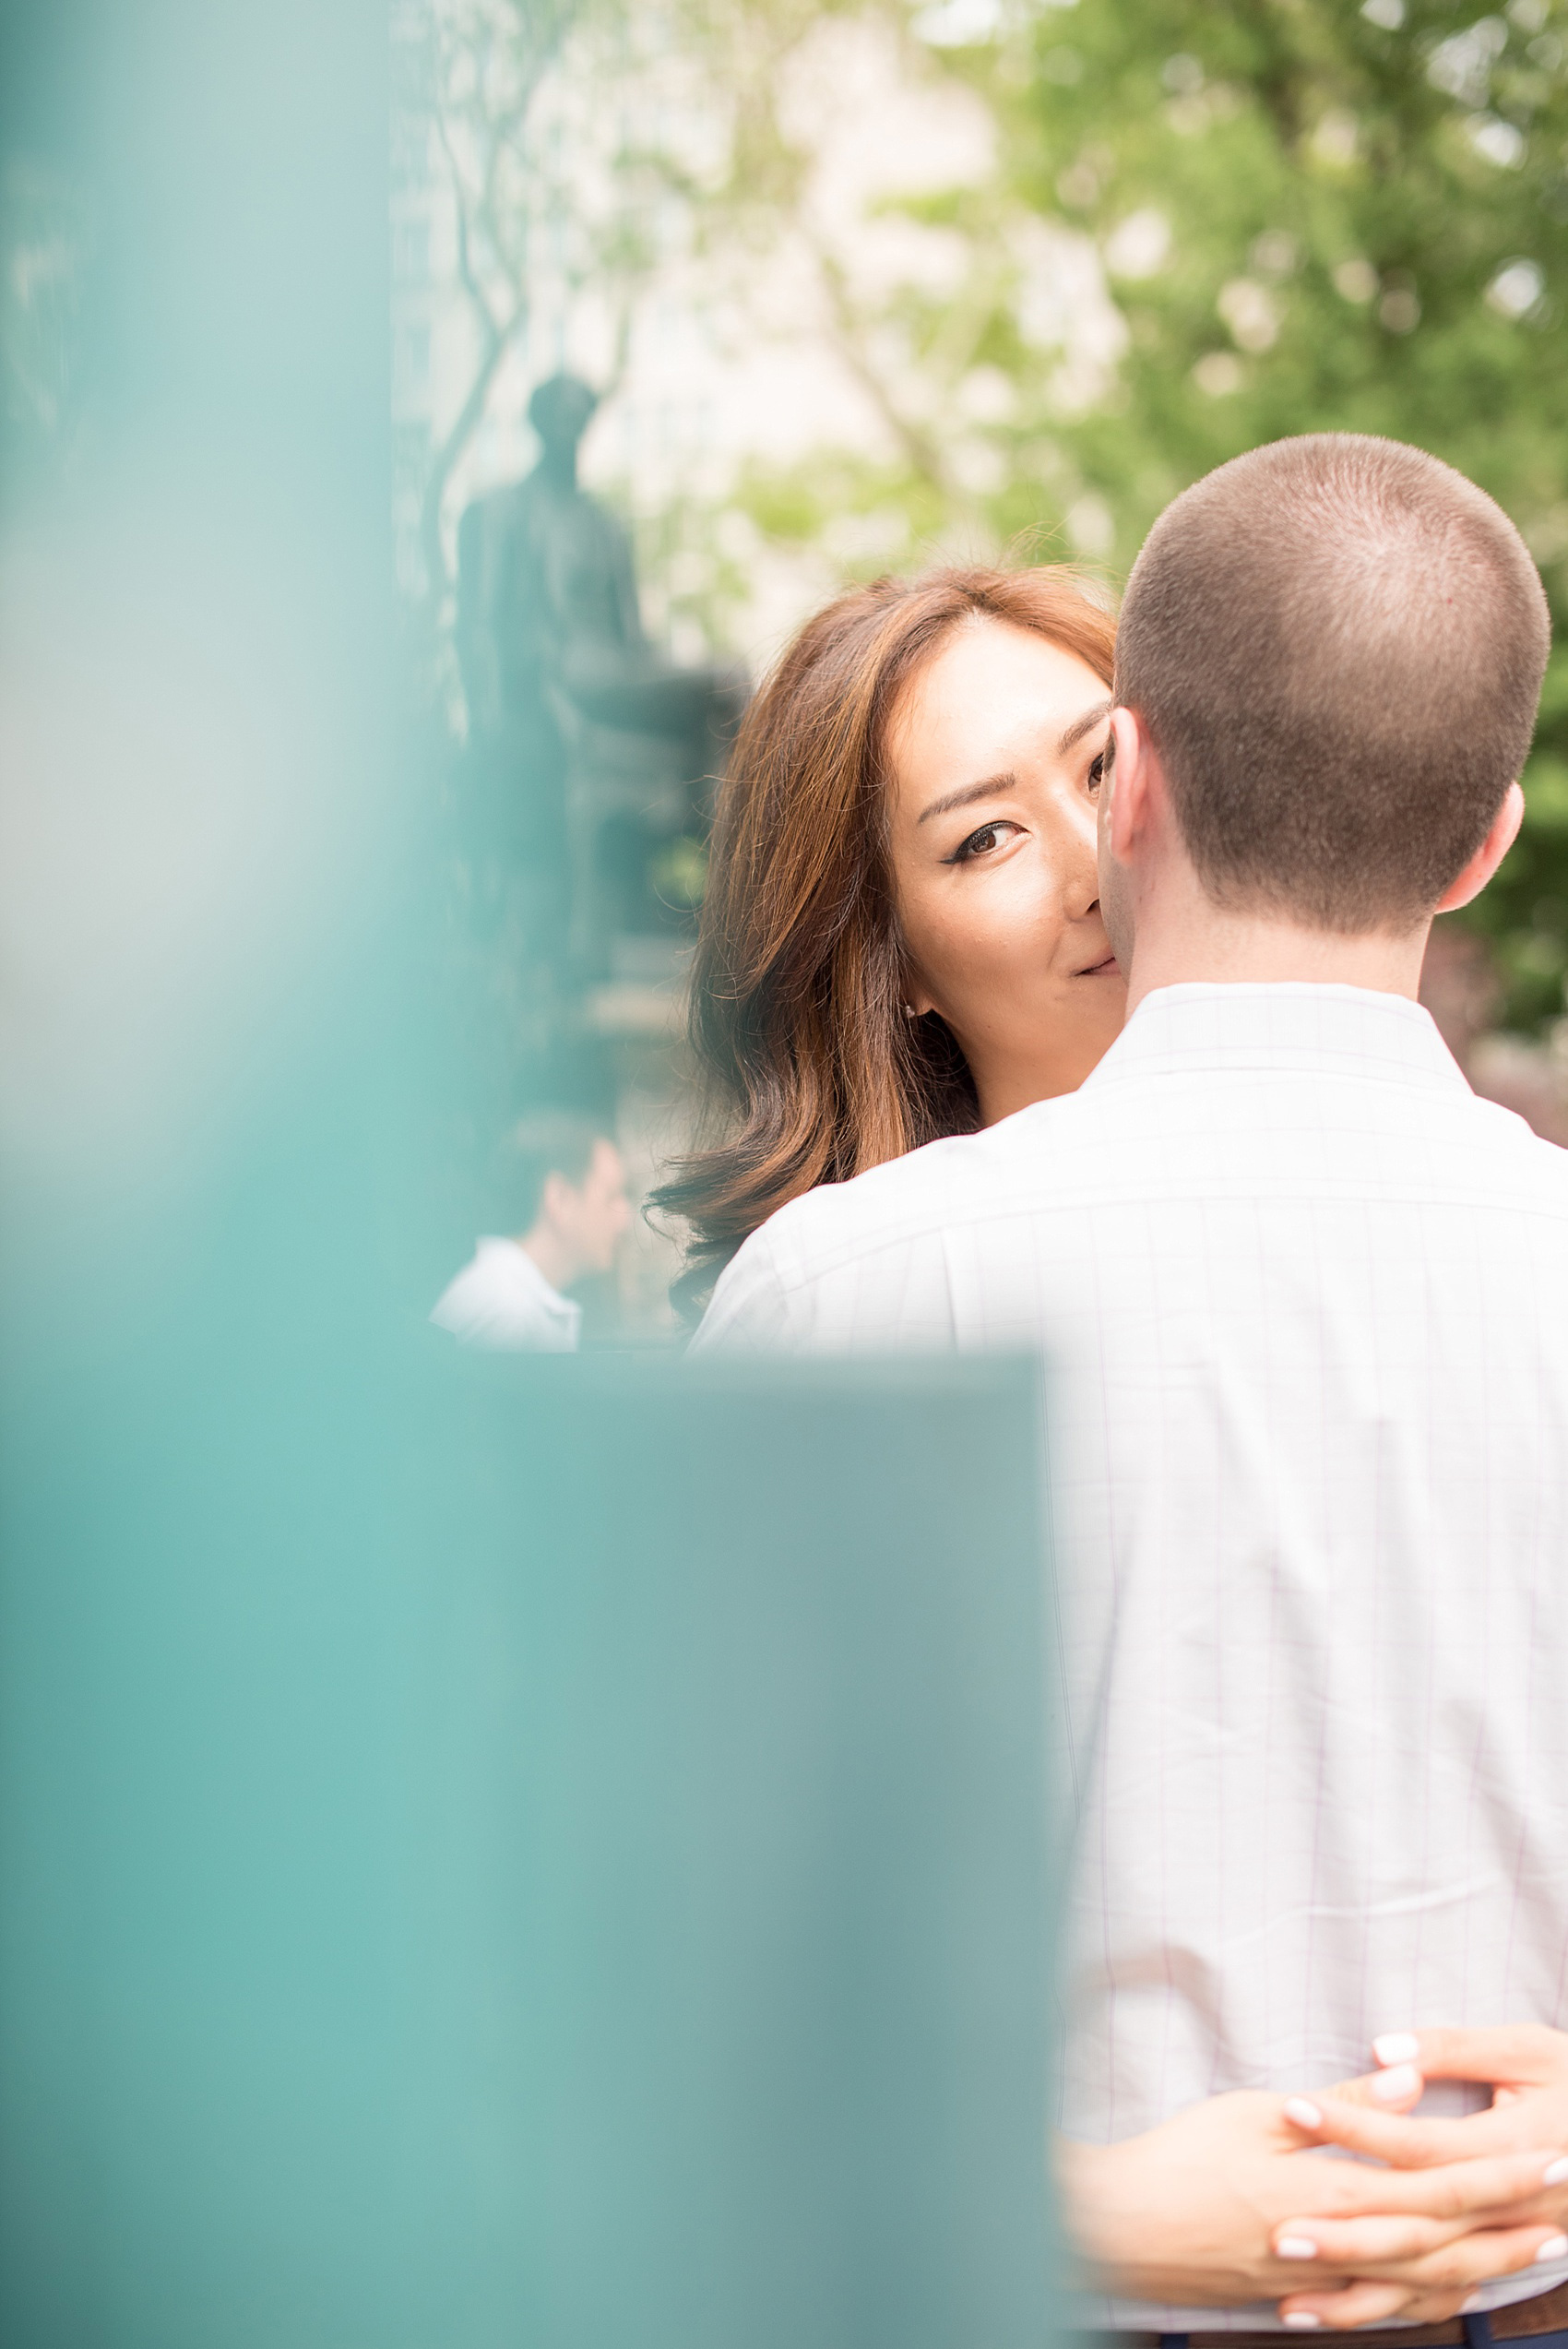 Mikkel Paige Photography photos of a Madison Square Park engagement session in NYC by the subway entrance.